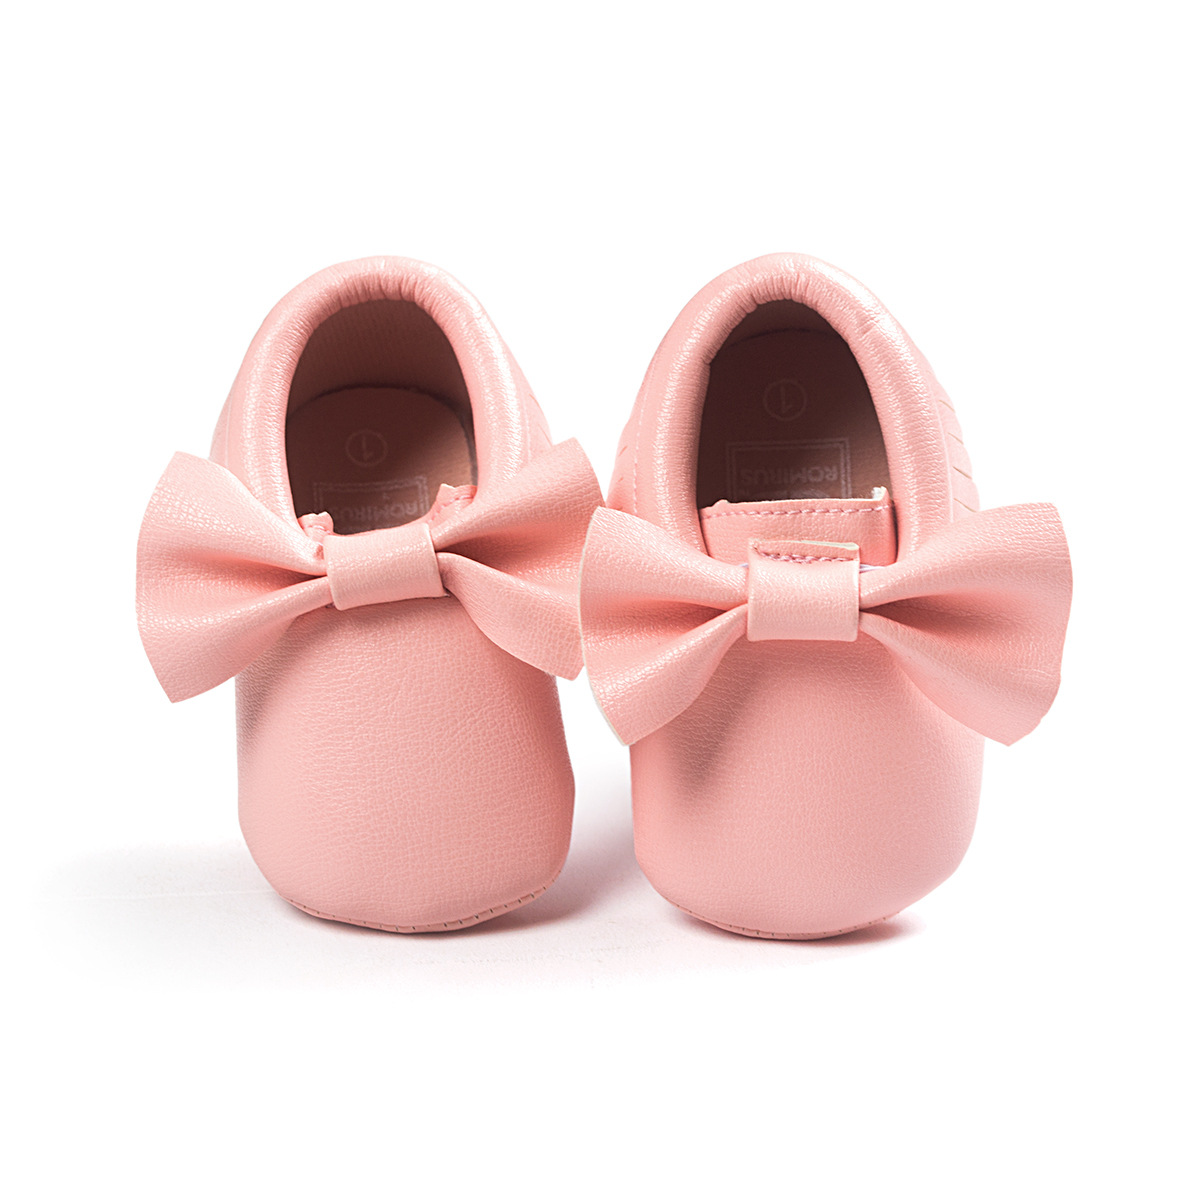 Handmade-Soft-Bottom-Fashion-Tassels-Baby-Moccasin-Newborn-Babies-Shoes-14-colors-PU-leather-Prewalkers-Boots-5